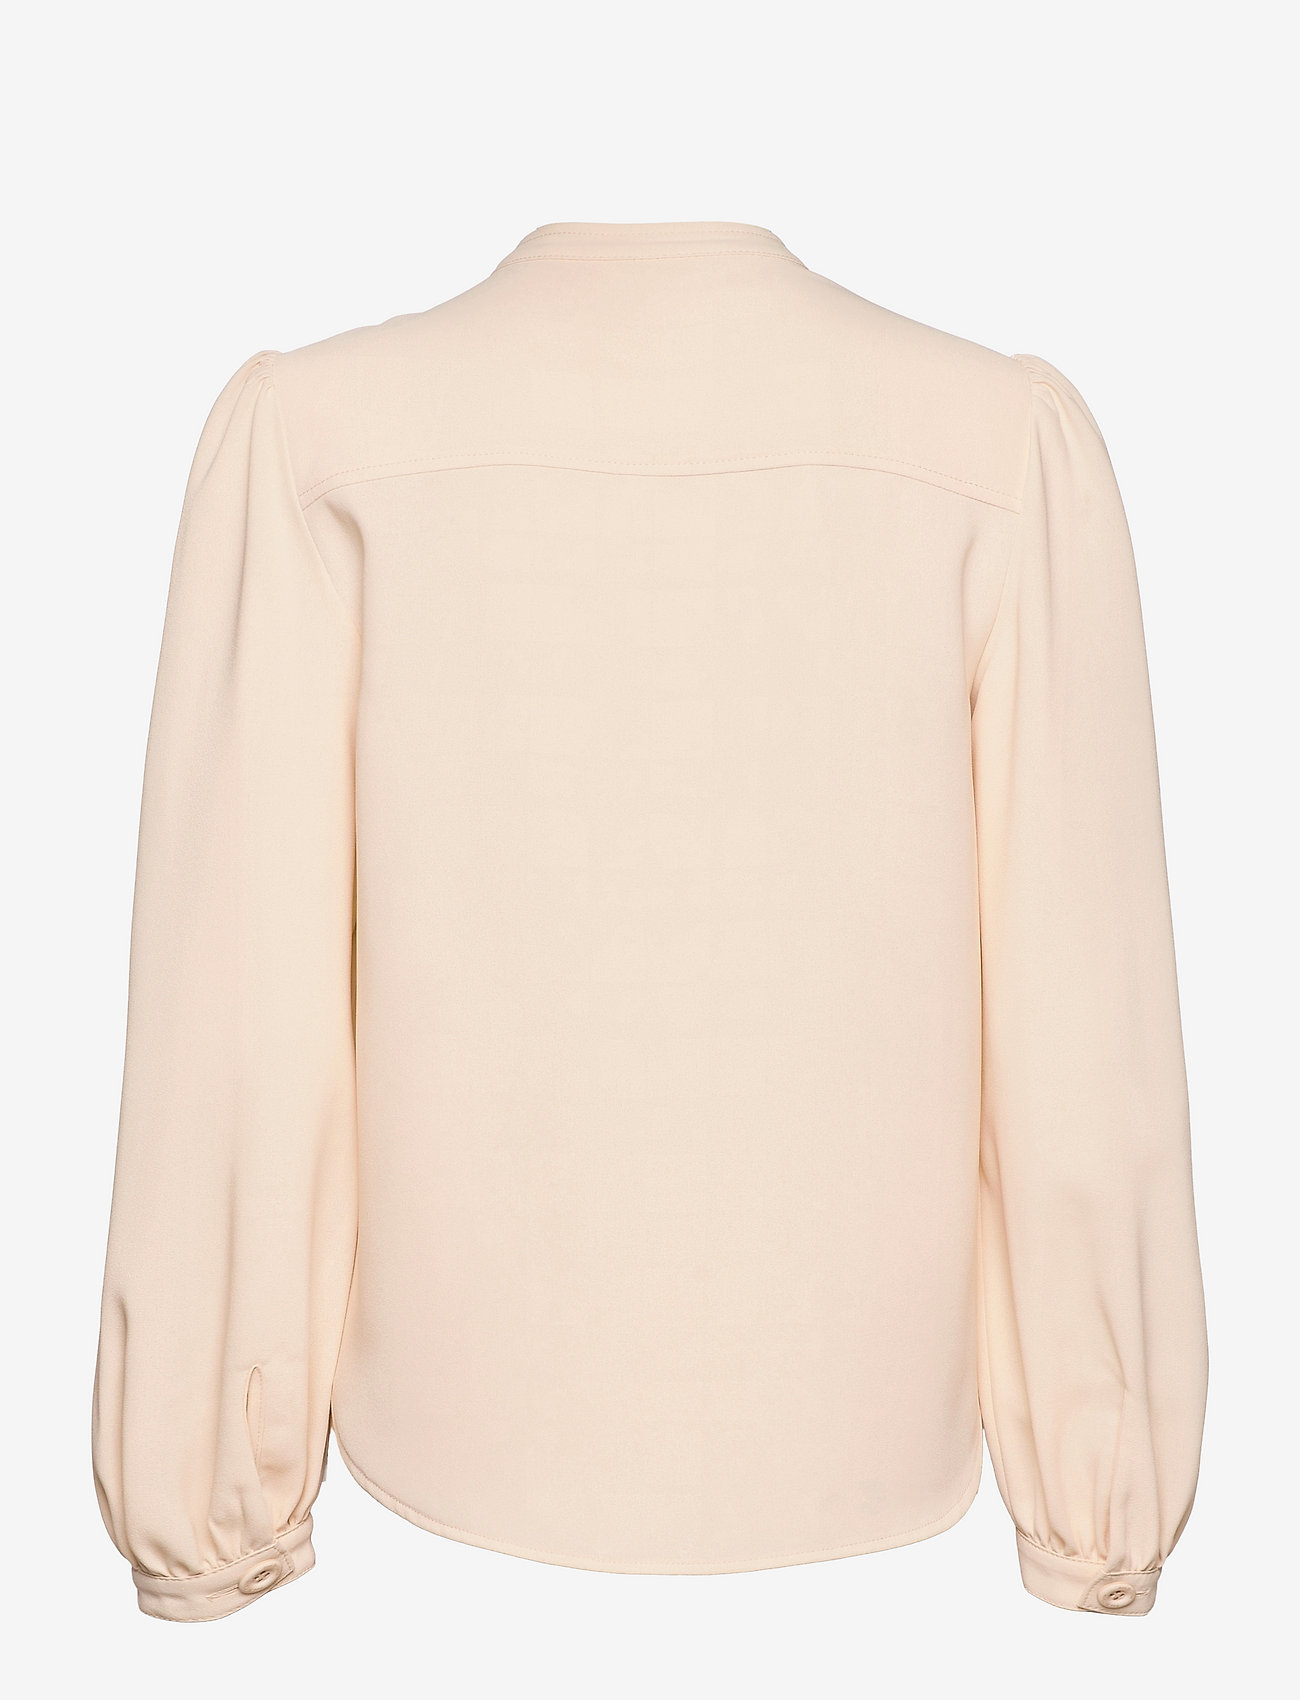 See by Chloé - TOP - blouses met lange mouwen - antique white - 1